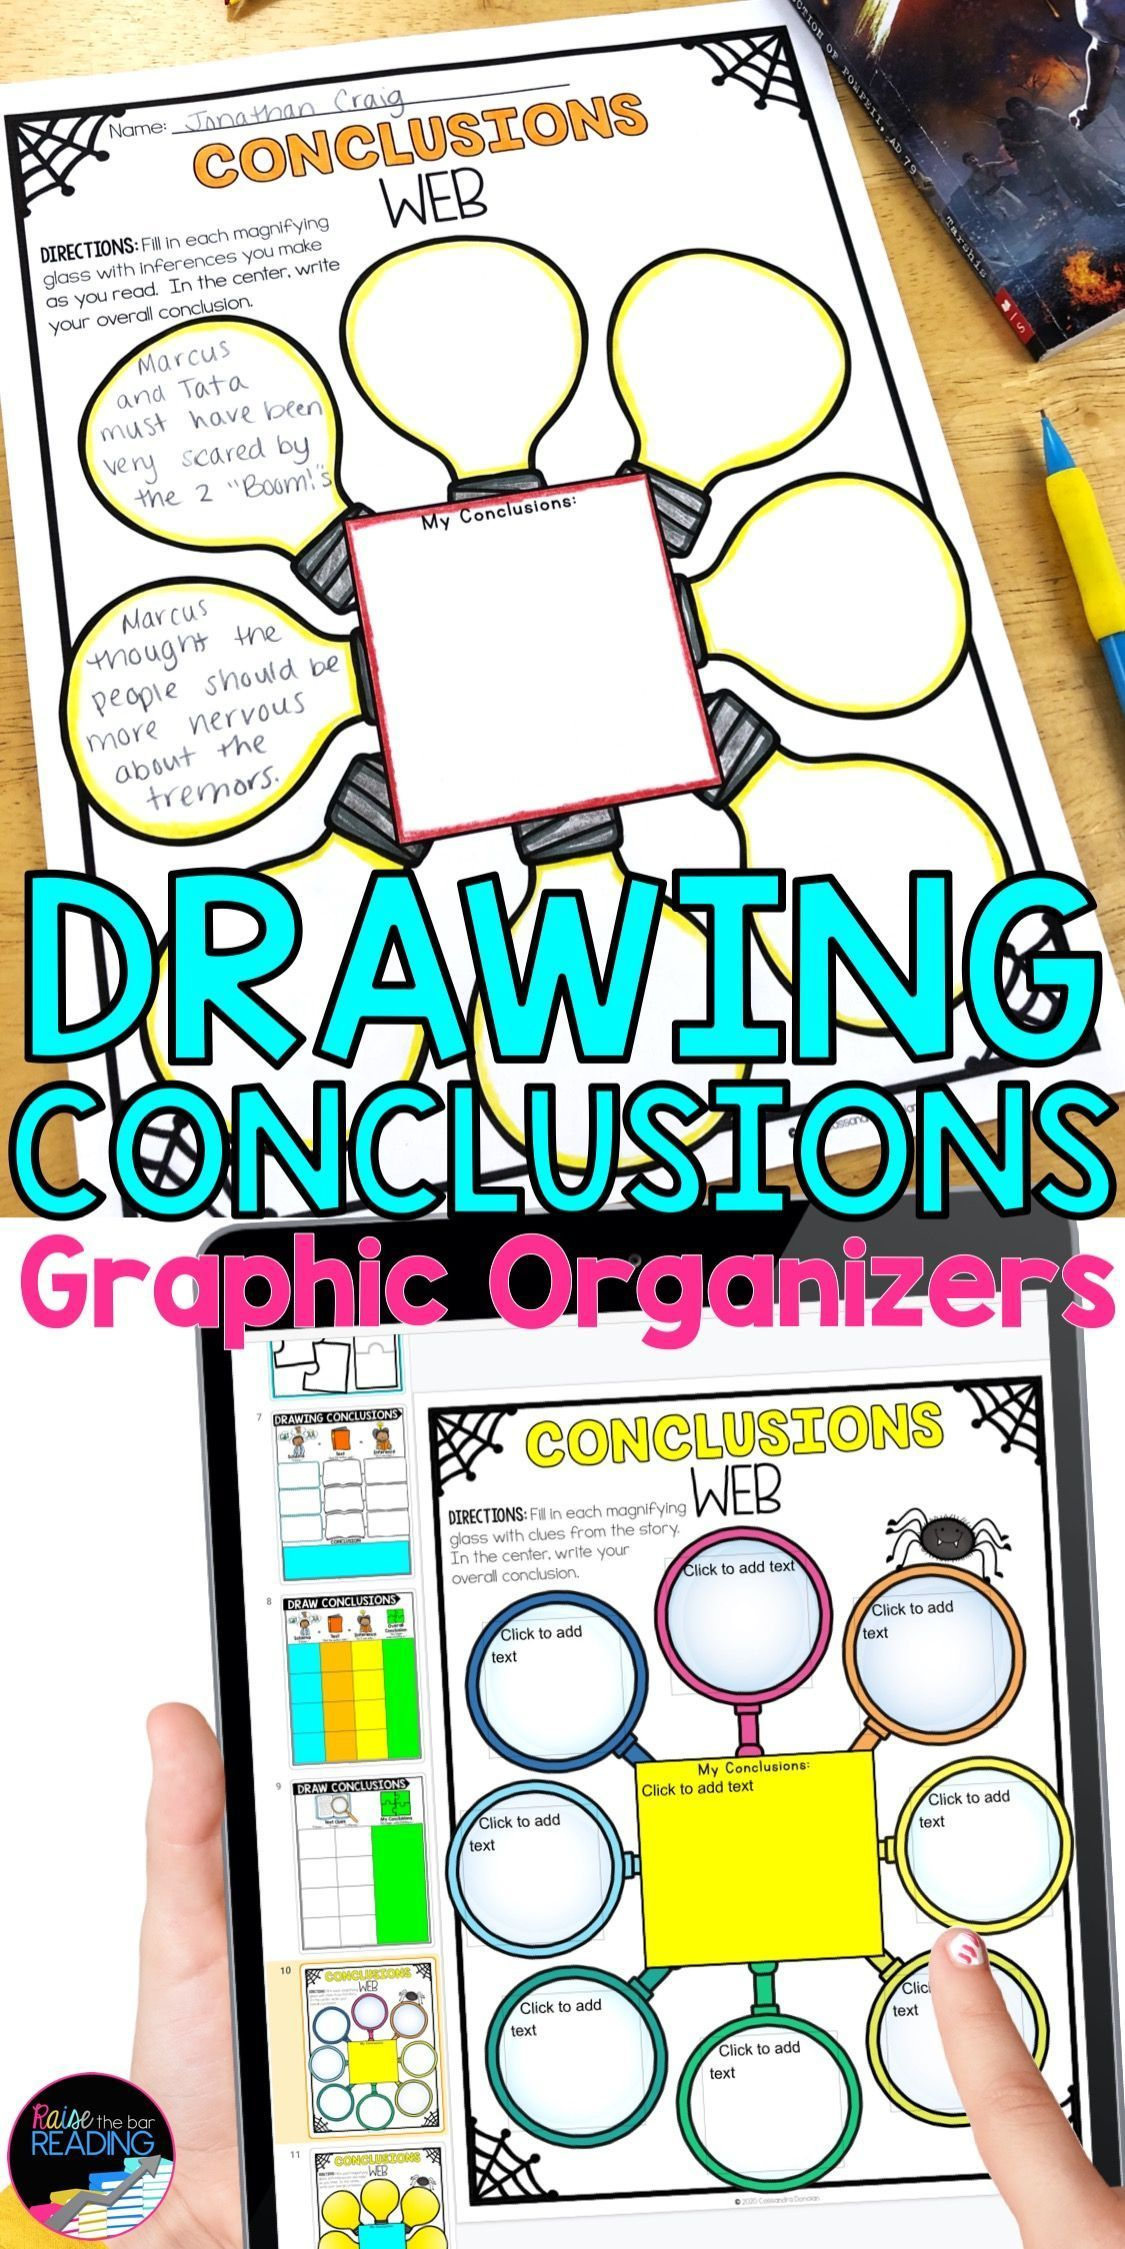 Drawing Conclusions Worksheets Paper Digital Reading Graphic Organizers Graphic Organizers Reading Graphic Organizers Drawing Conclusions [ 2249 x 1125 Pixel ]